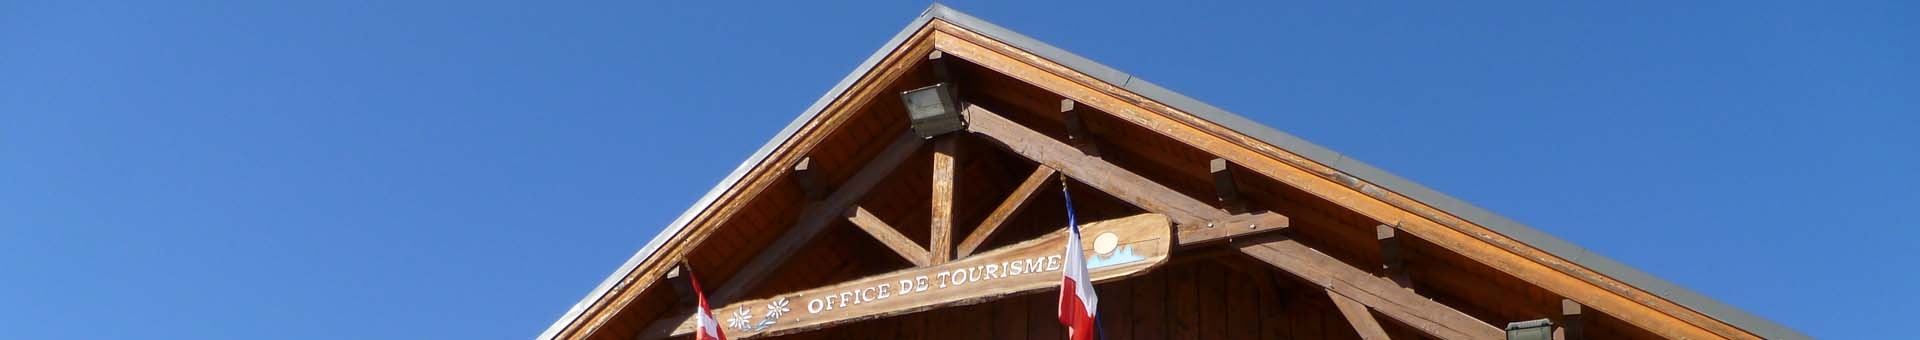 Station Village > Office de Tourisme > tetiere ete